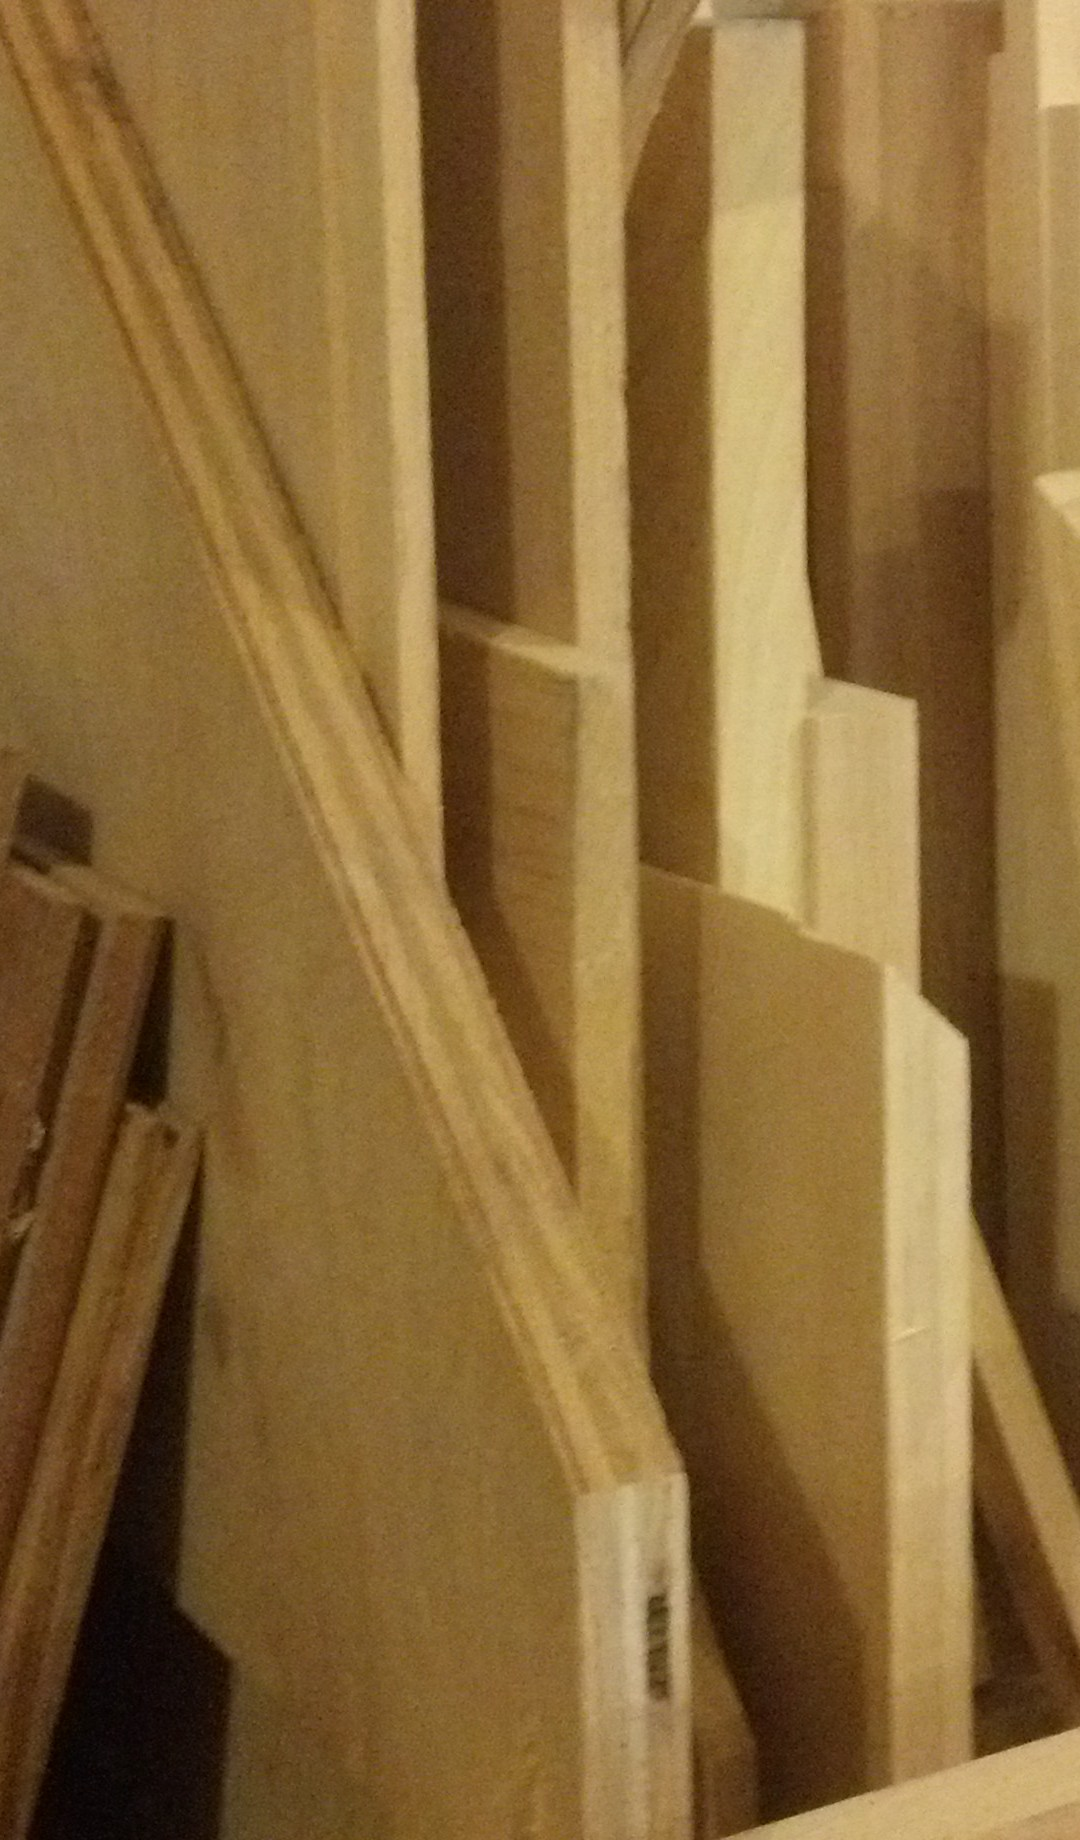 What to do with Scrap wood